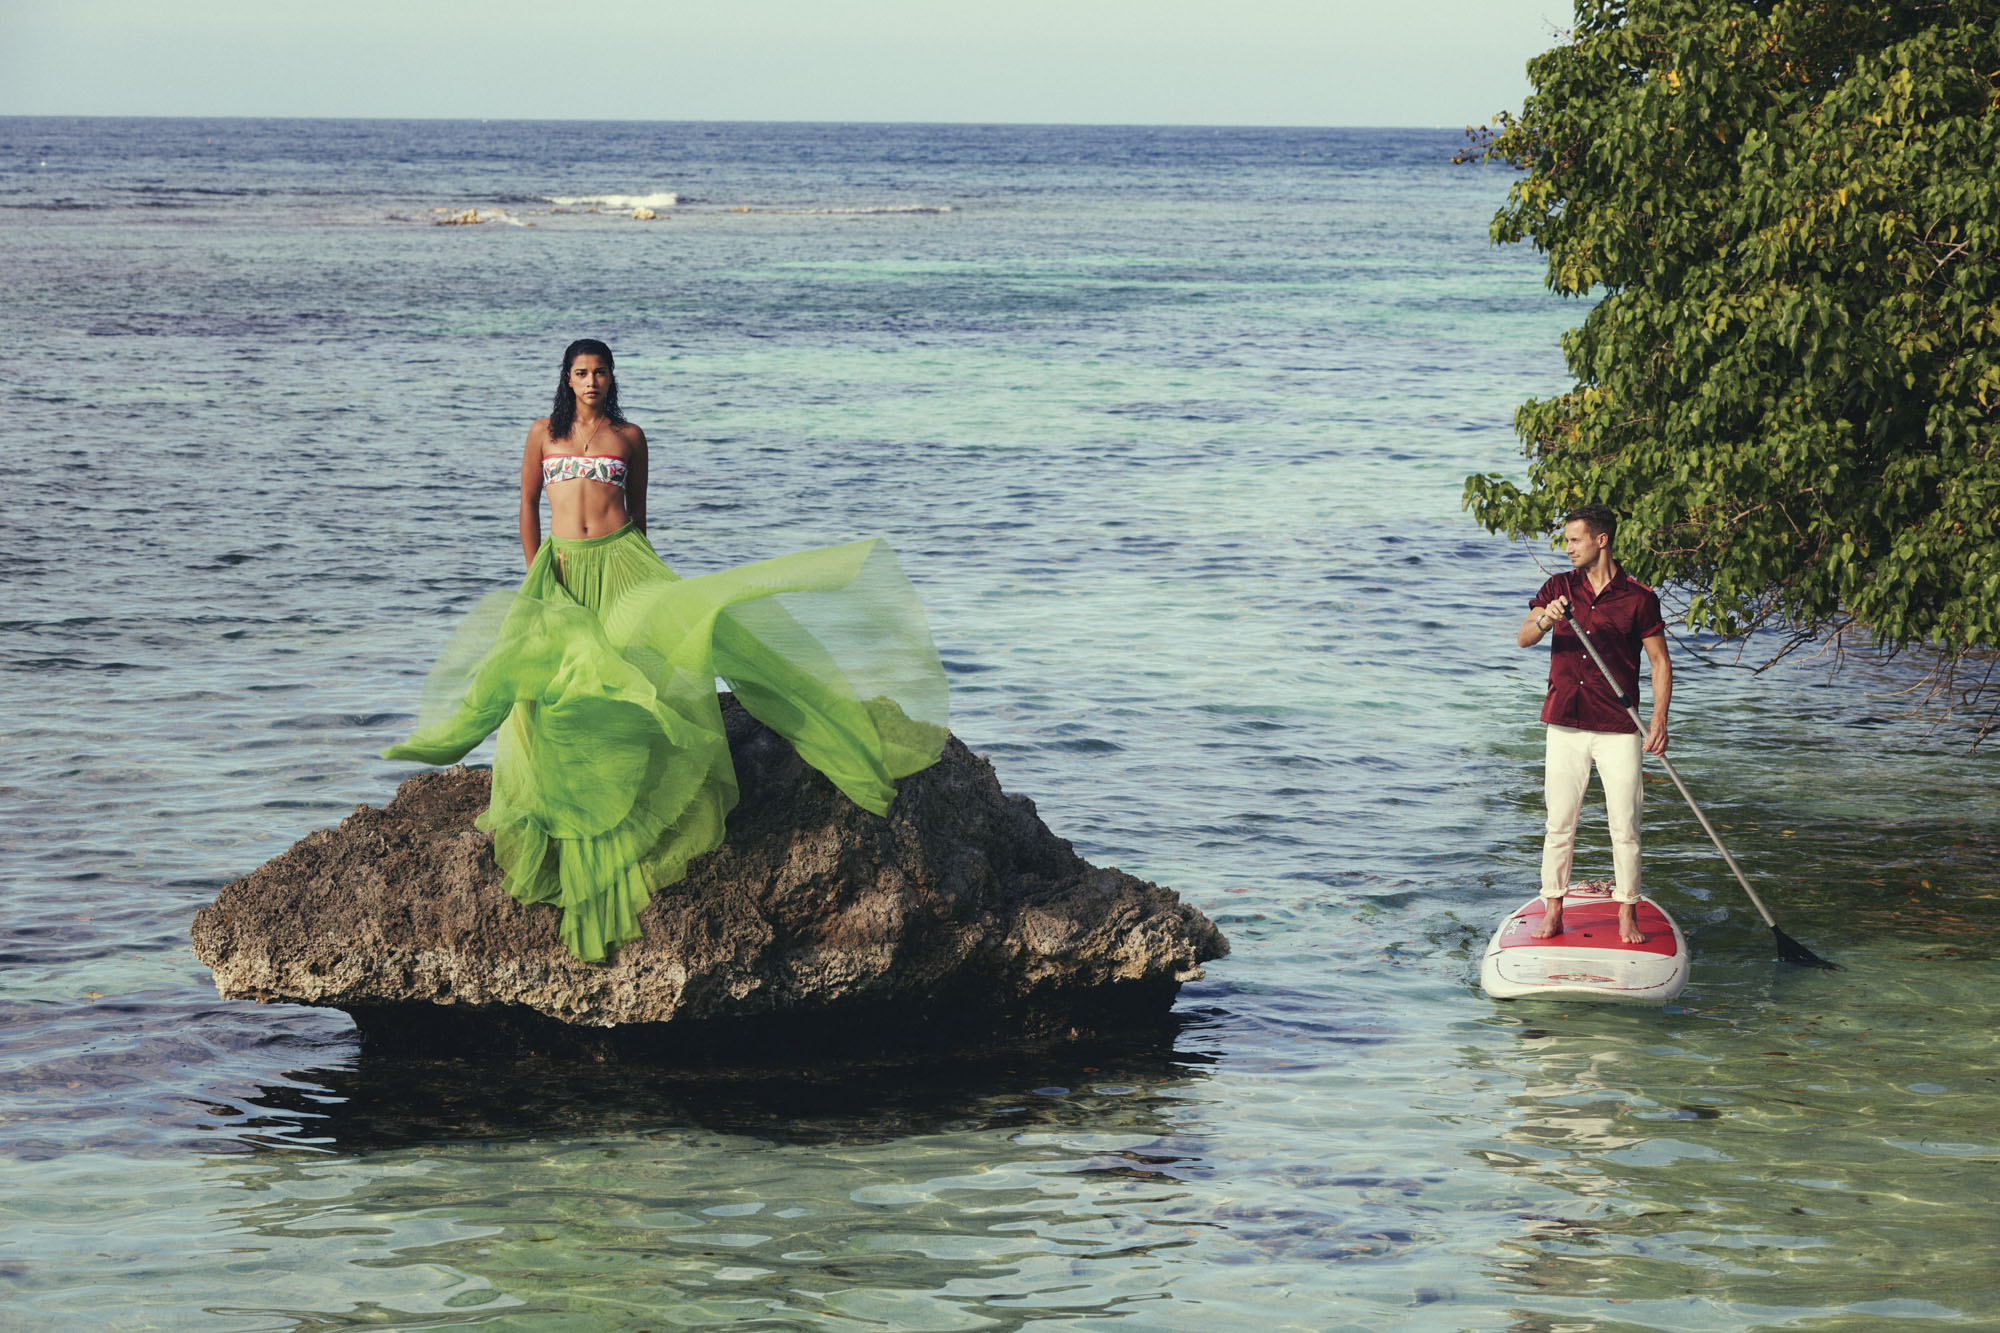 Hannah Bronfman and Brenda Fallis modeling the breeziest looks in Jamaica